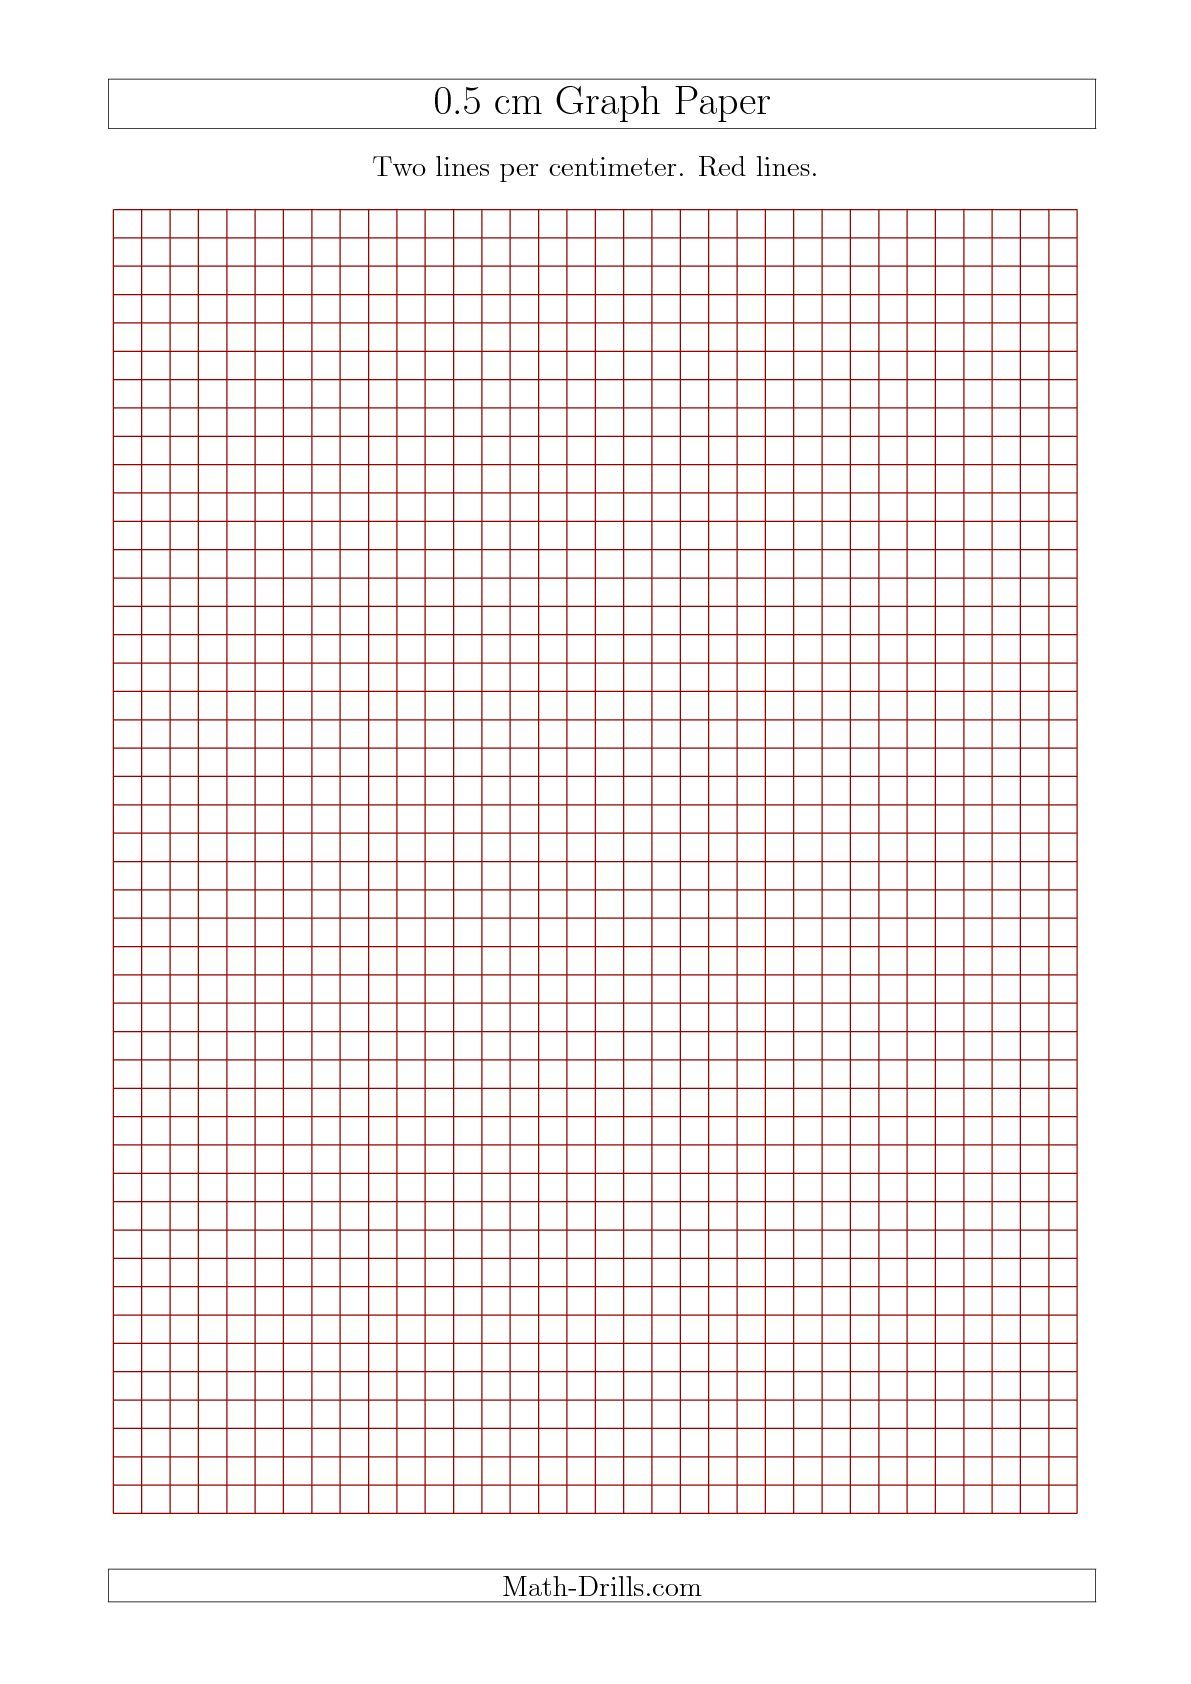 Worksheets Graph Paper Worksheet new 2015 09 17 0 5 cm graph paper with red lines a4 size math worksheet freemath